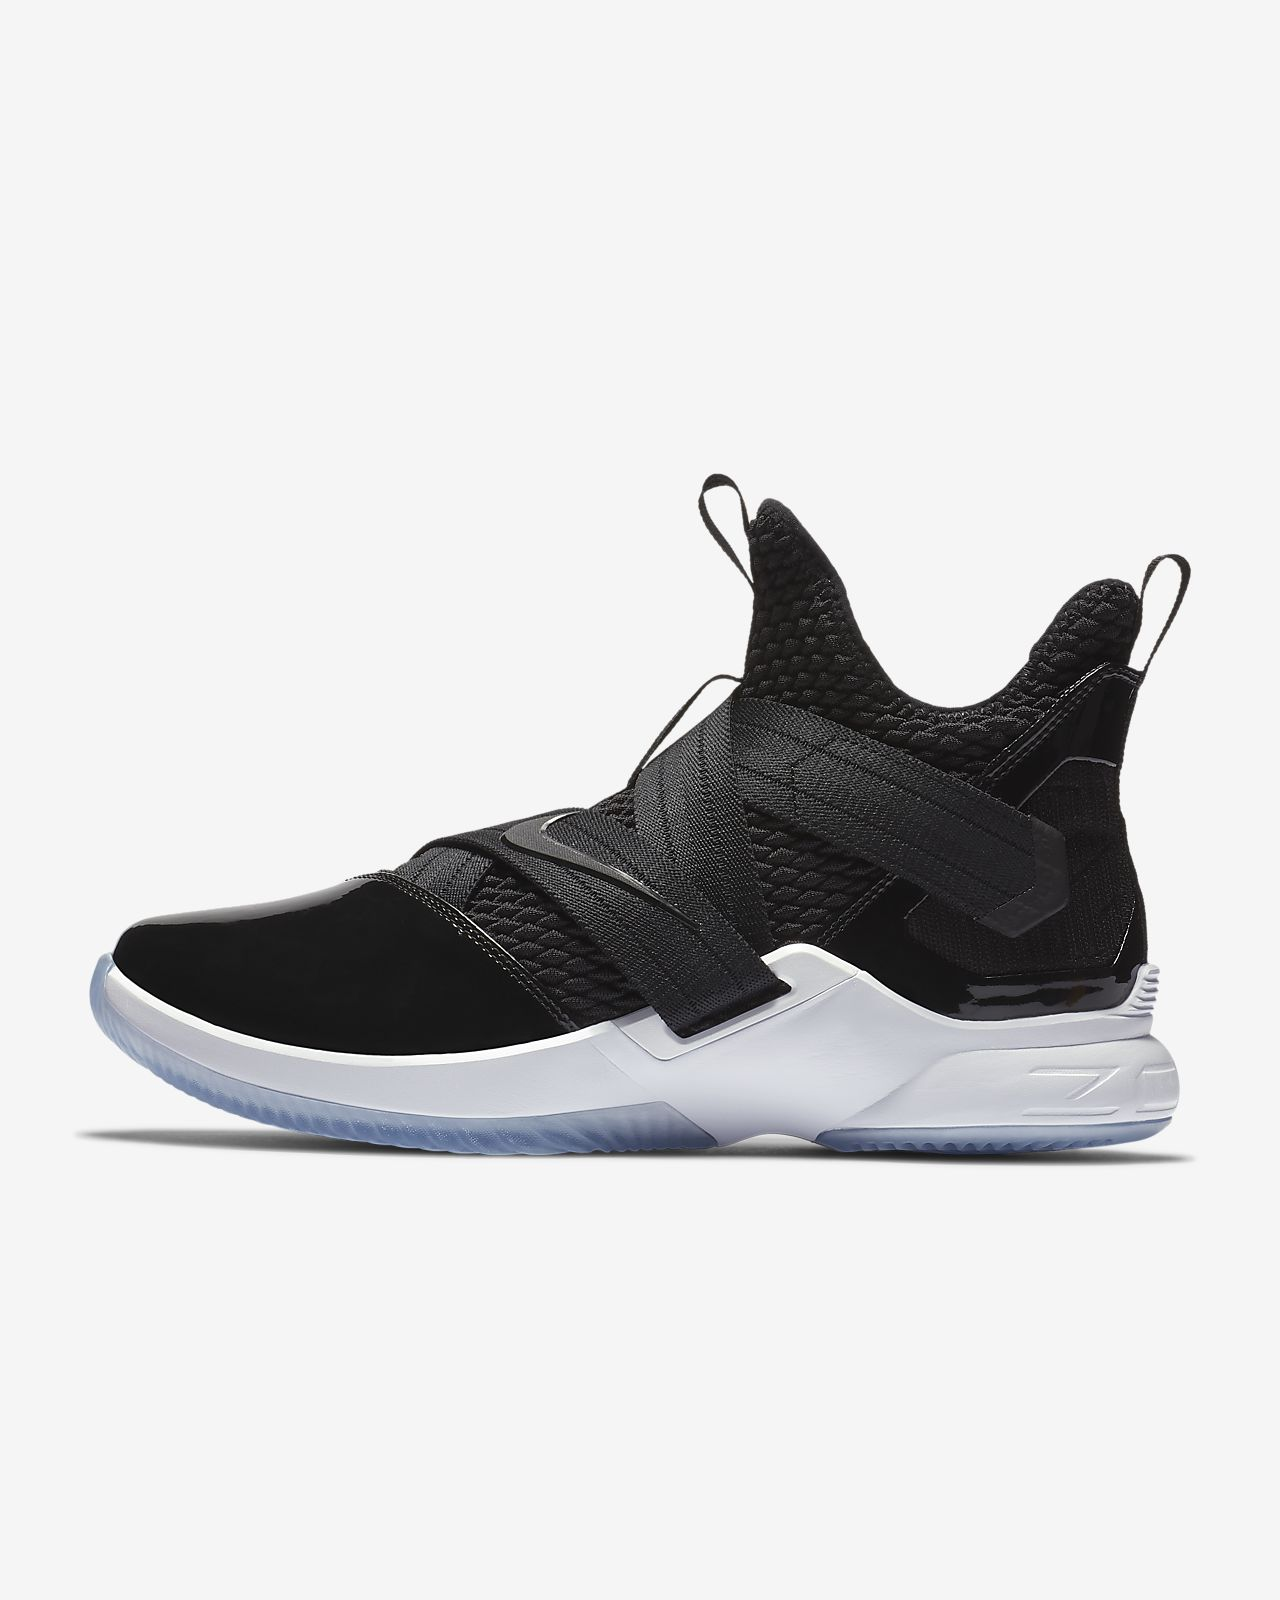 lower price with e8b0a feeb5 LeBron Soldier 12 SFG Basketball Shoe. Nike.com